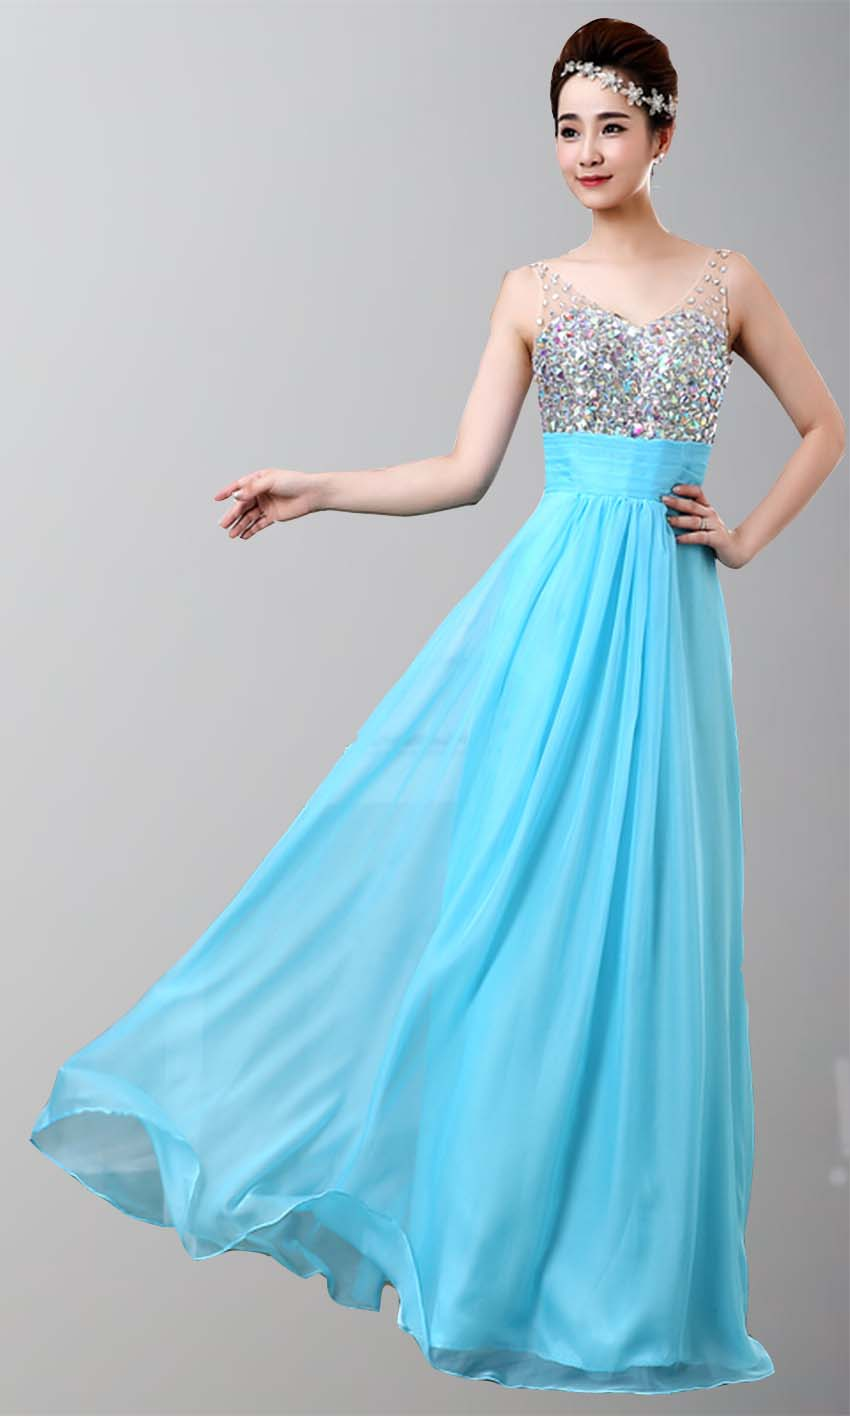 Teal Rhinestone empire Long Lace Prom Dresses 2015 KSP340 [KSP340 ...